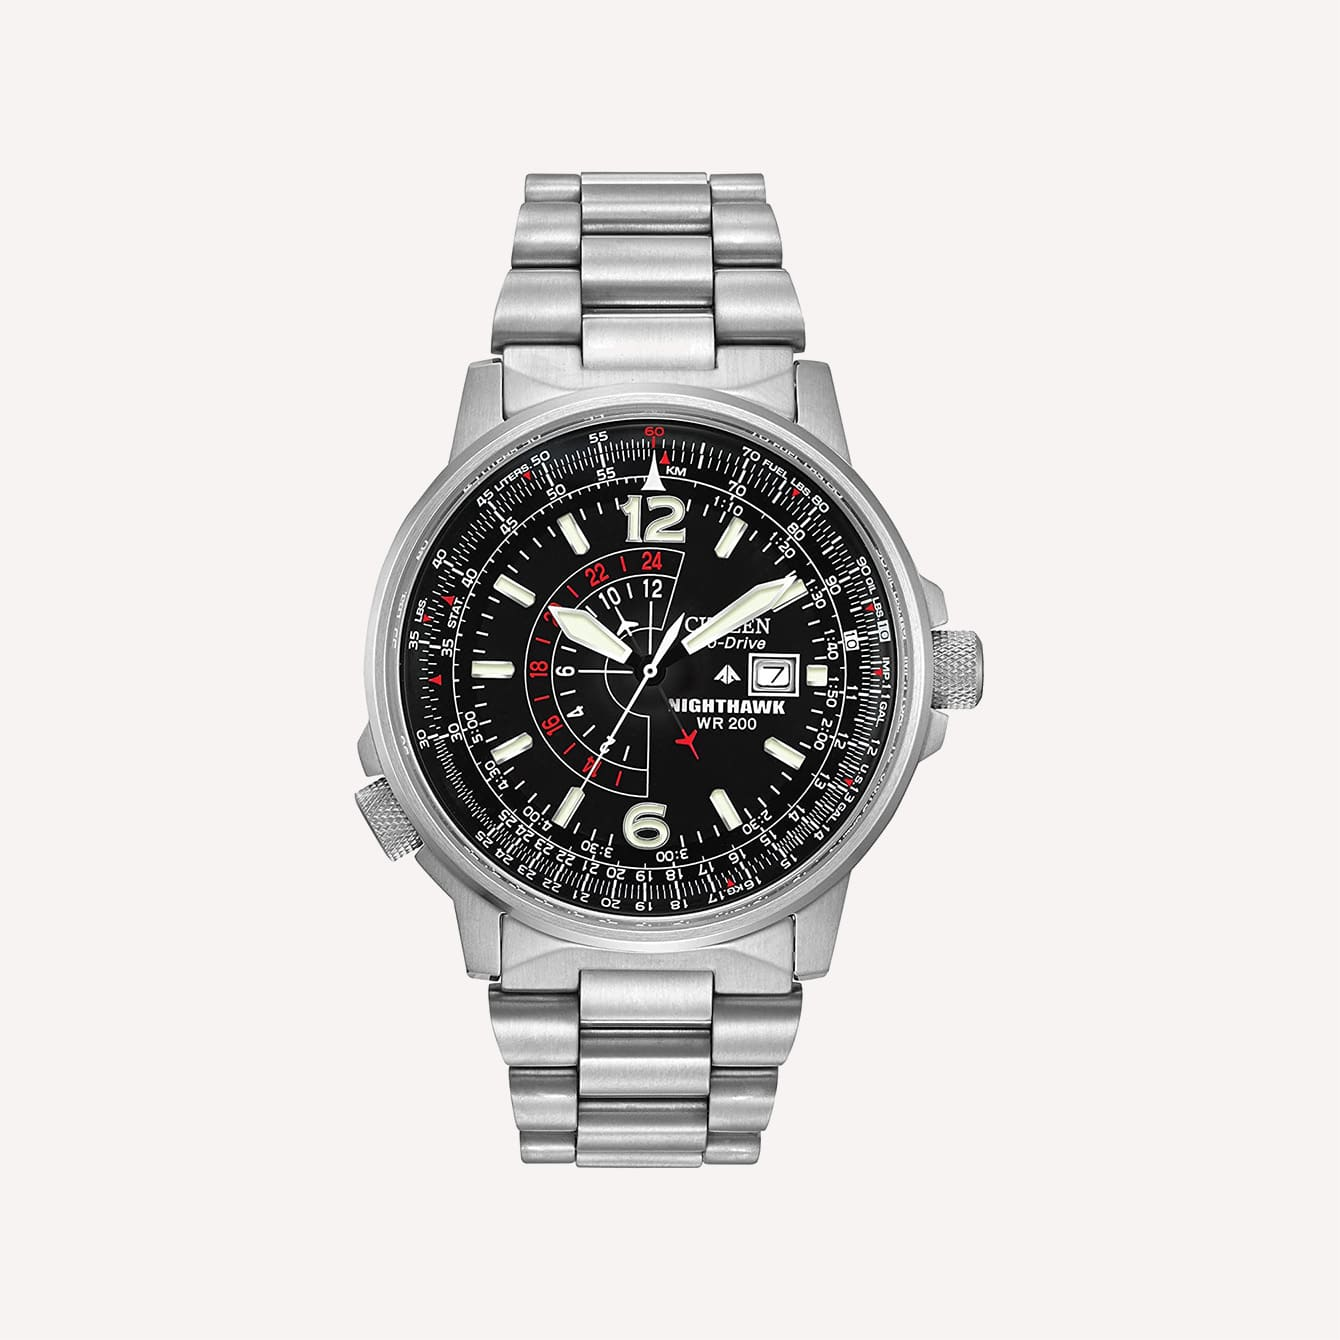 Citizen Men_s Eco Drive Promaster Nighthawk Dual Time Watch with Date BJ7000 52E